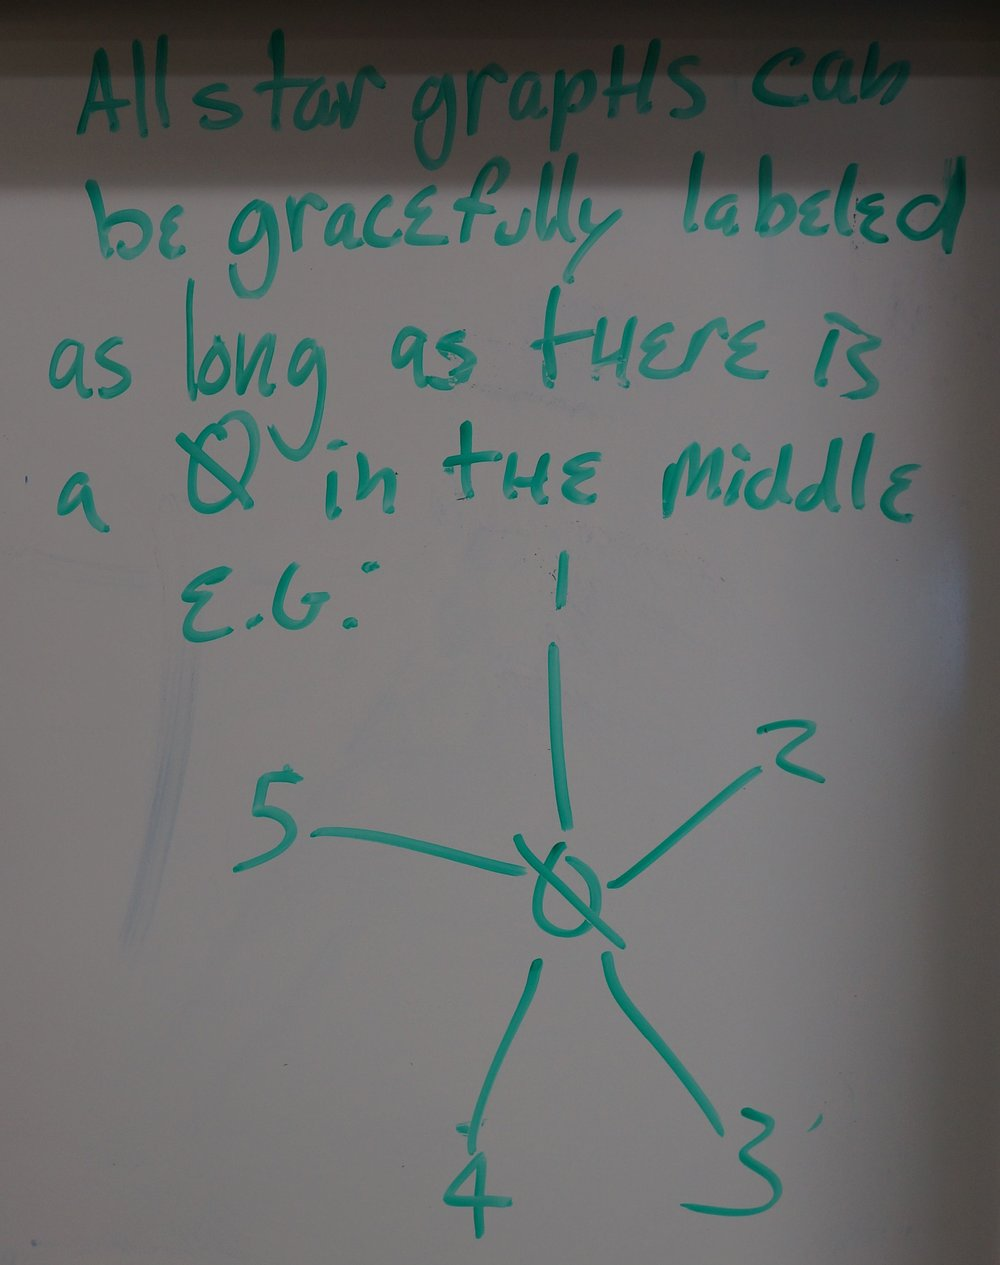 "Another group wrote this about star graphs: ""All star graphs can be gracefully labelled as long as there is a 0 in the middle"""